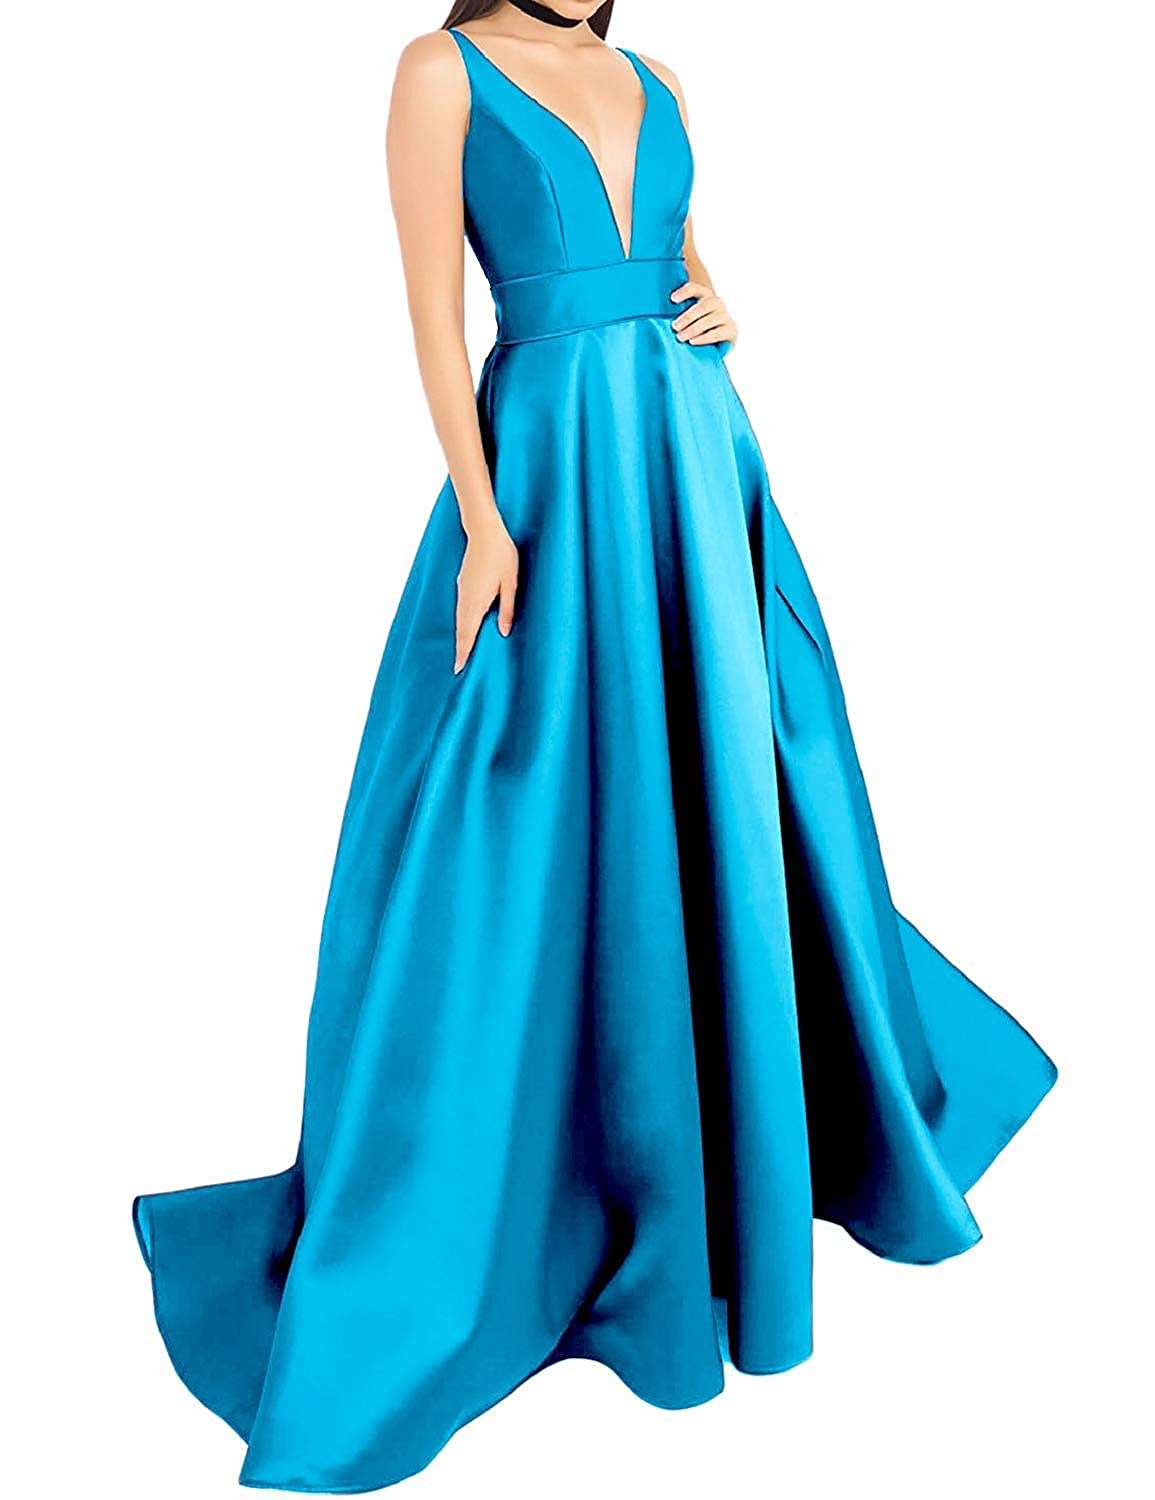 bluee luolandi Women's V Neck Prom Dresses A Line Satin Long Evening Formal Gowns with Pockets